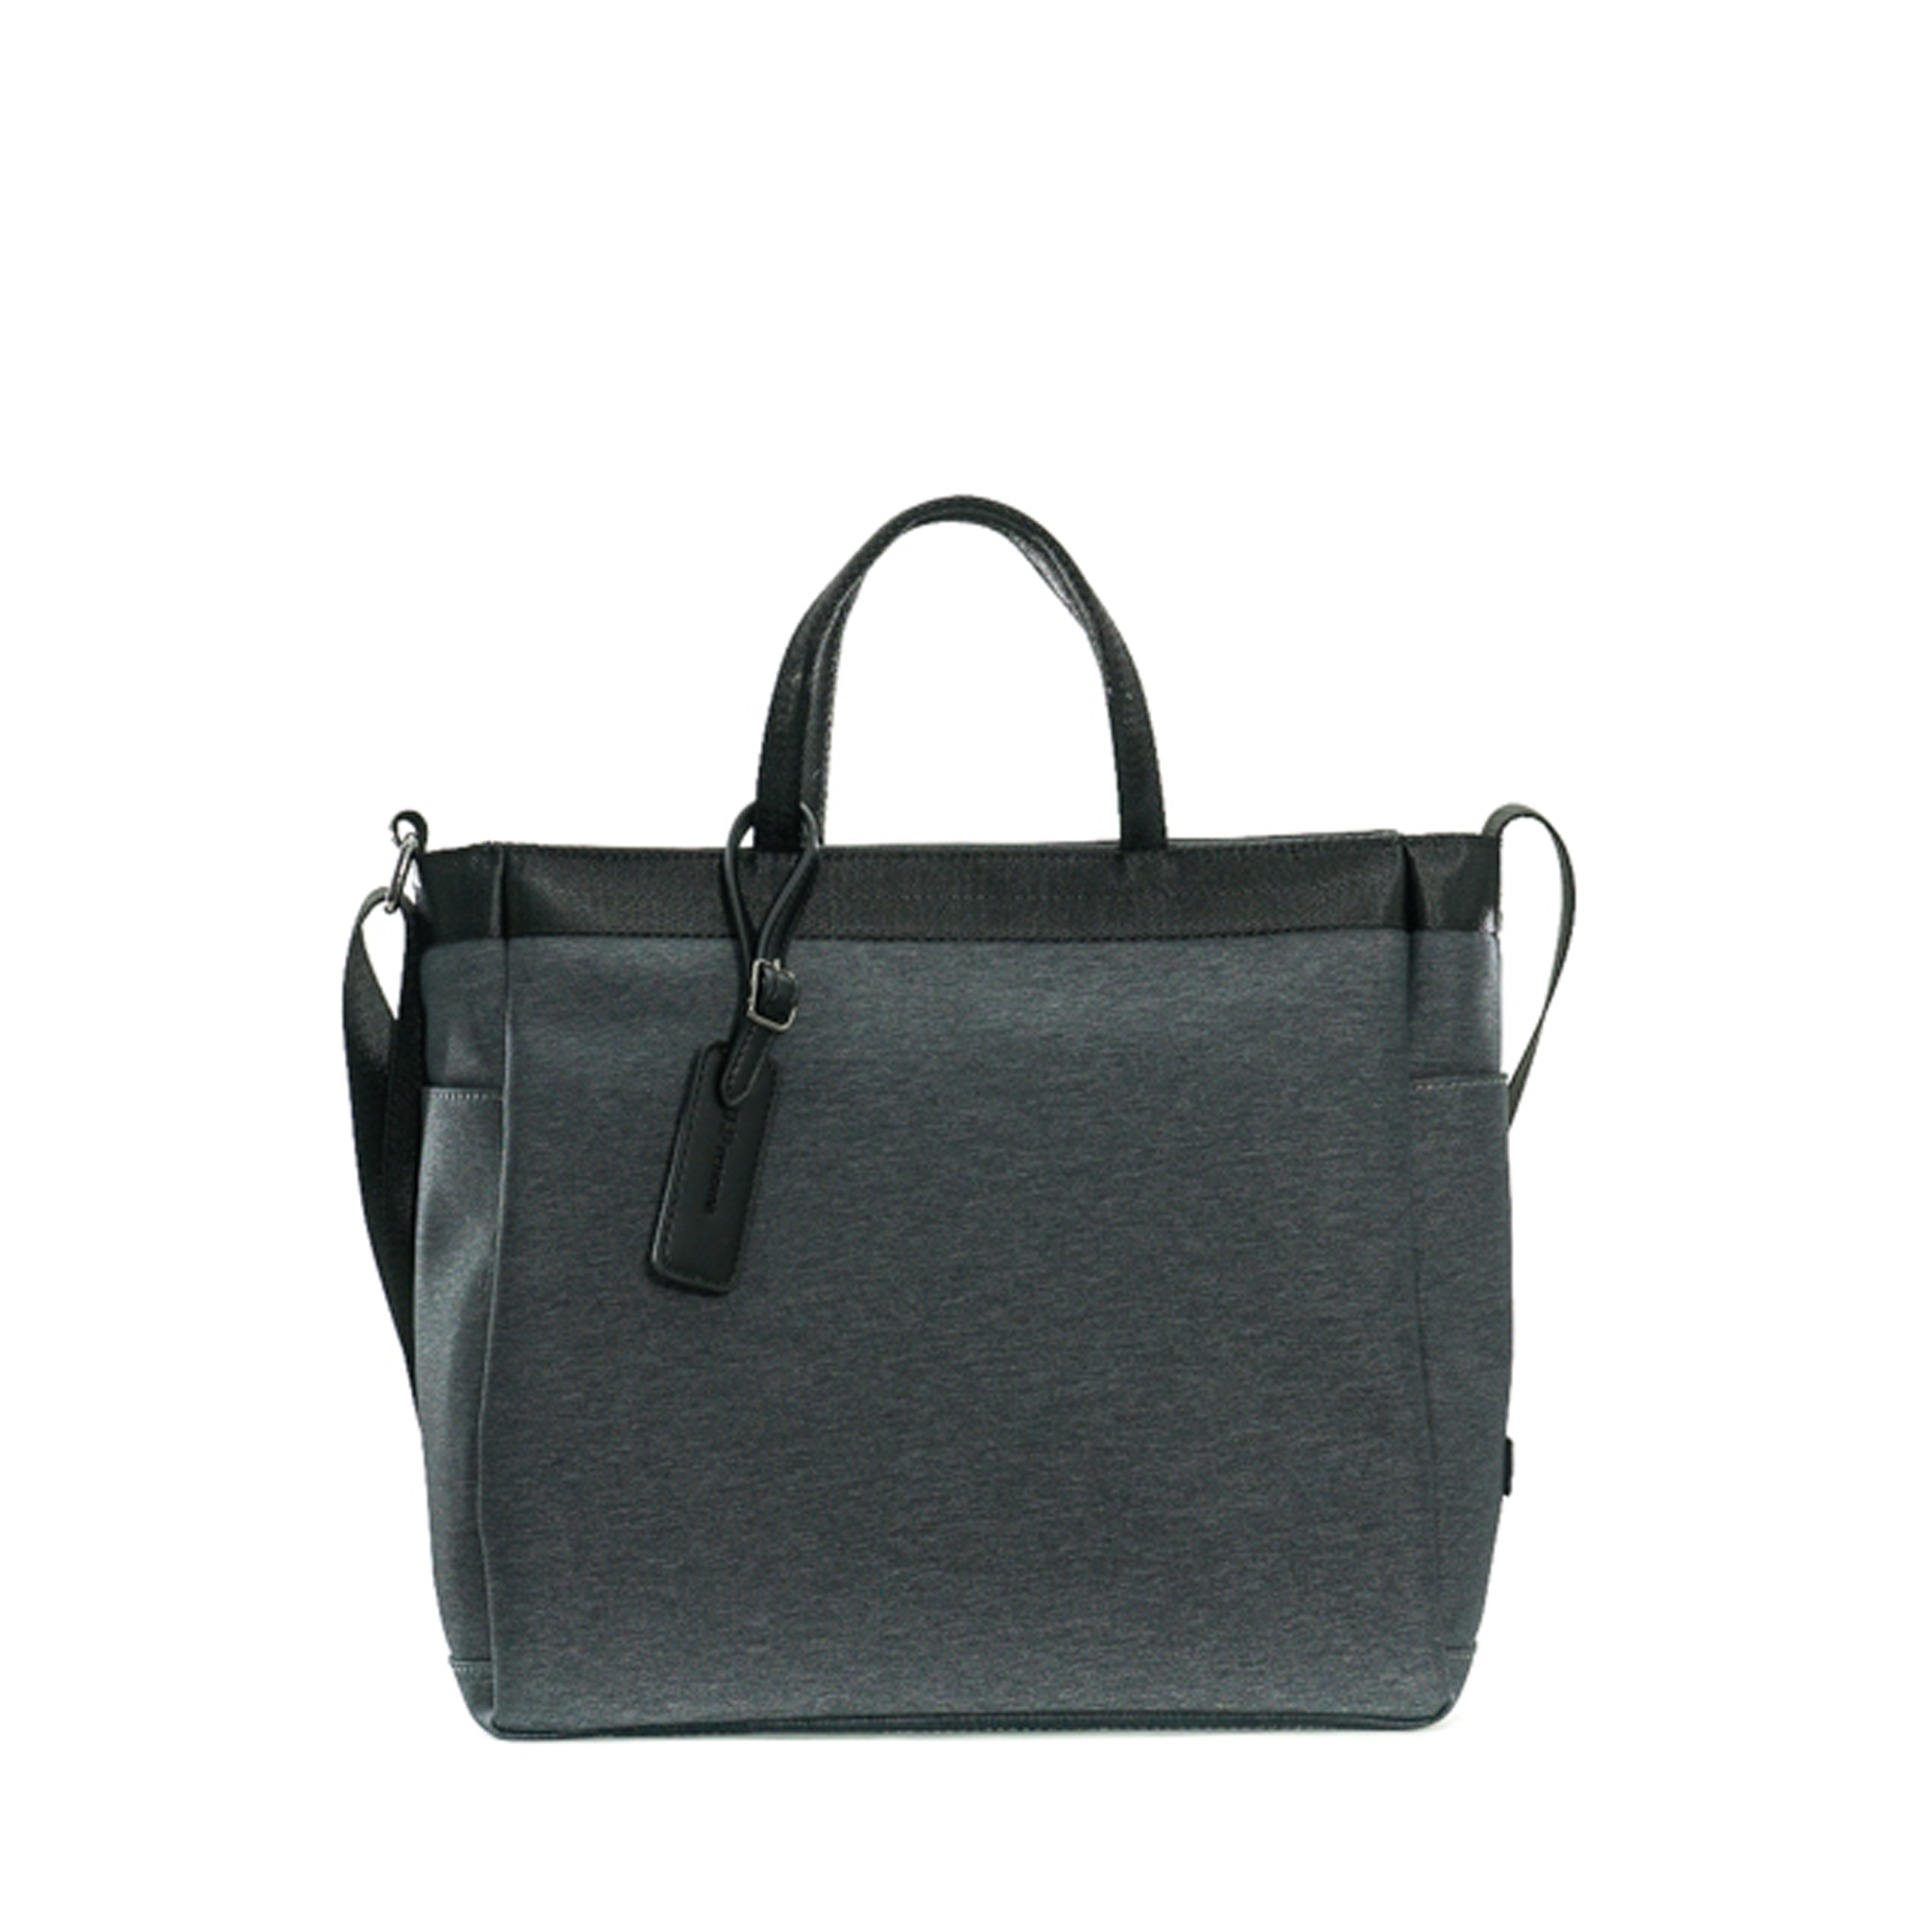 Renoma UP-N Medium Tote Bag